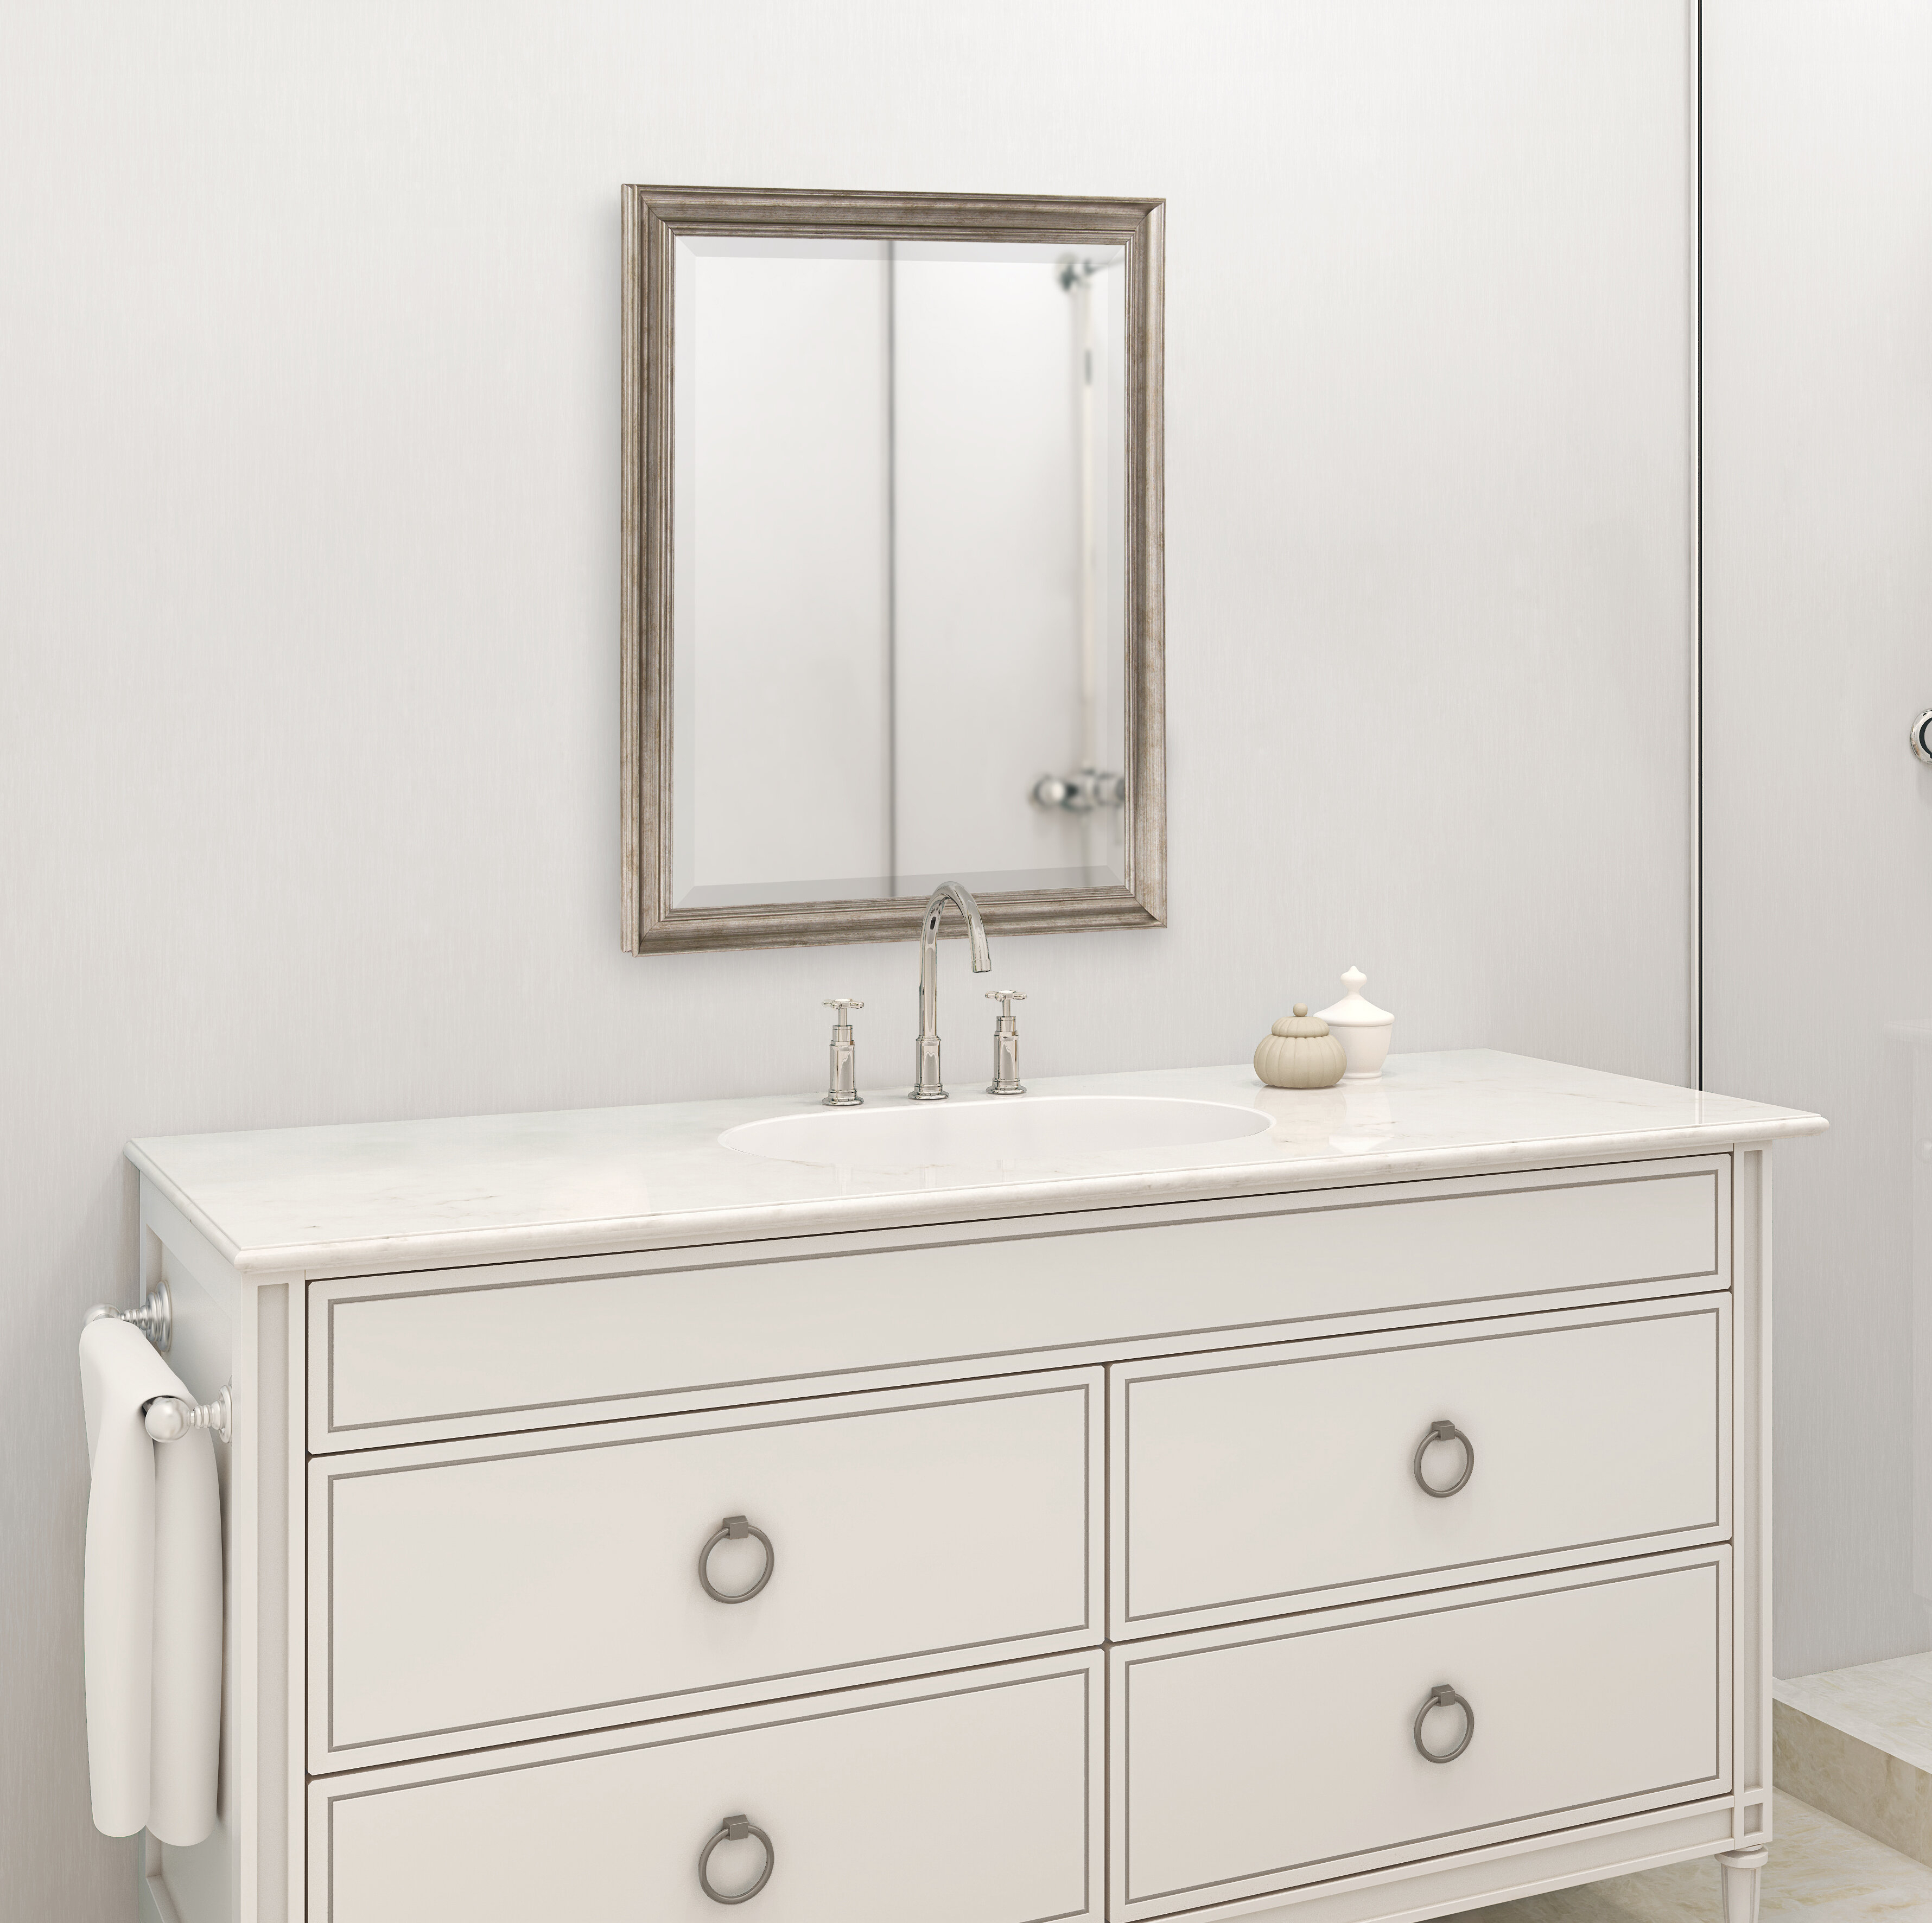 Arlo Framed Rectangle Accent Mirror With Regard To Rectangle Accent Mirrors (View 18 of 20)